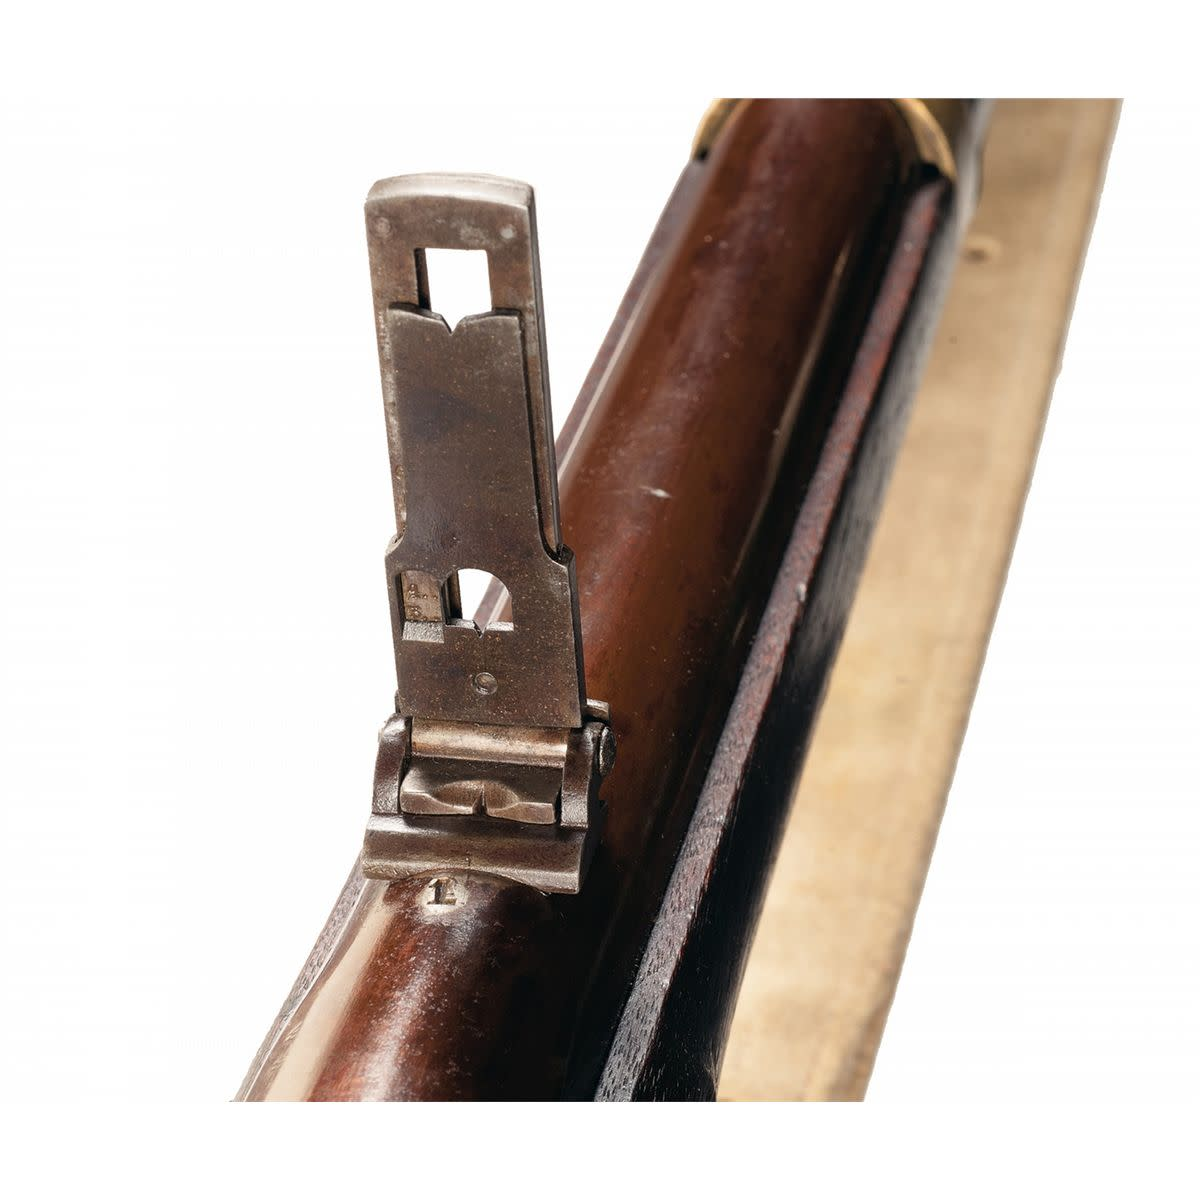 The Benton Screw Sight was one of the first long range adjustable rear sights that Harper's Ferry used. It was found to be too fragile and that the dovetail milling allowed the sight to be jarred sideways or even lost. This led to a second style of long range sight.